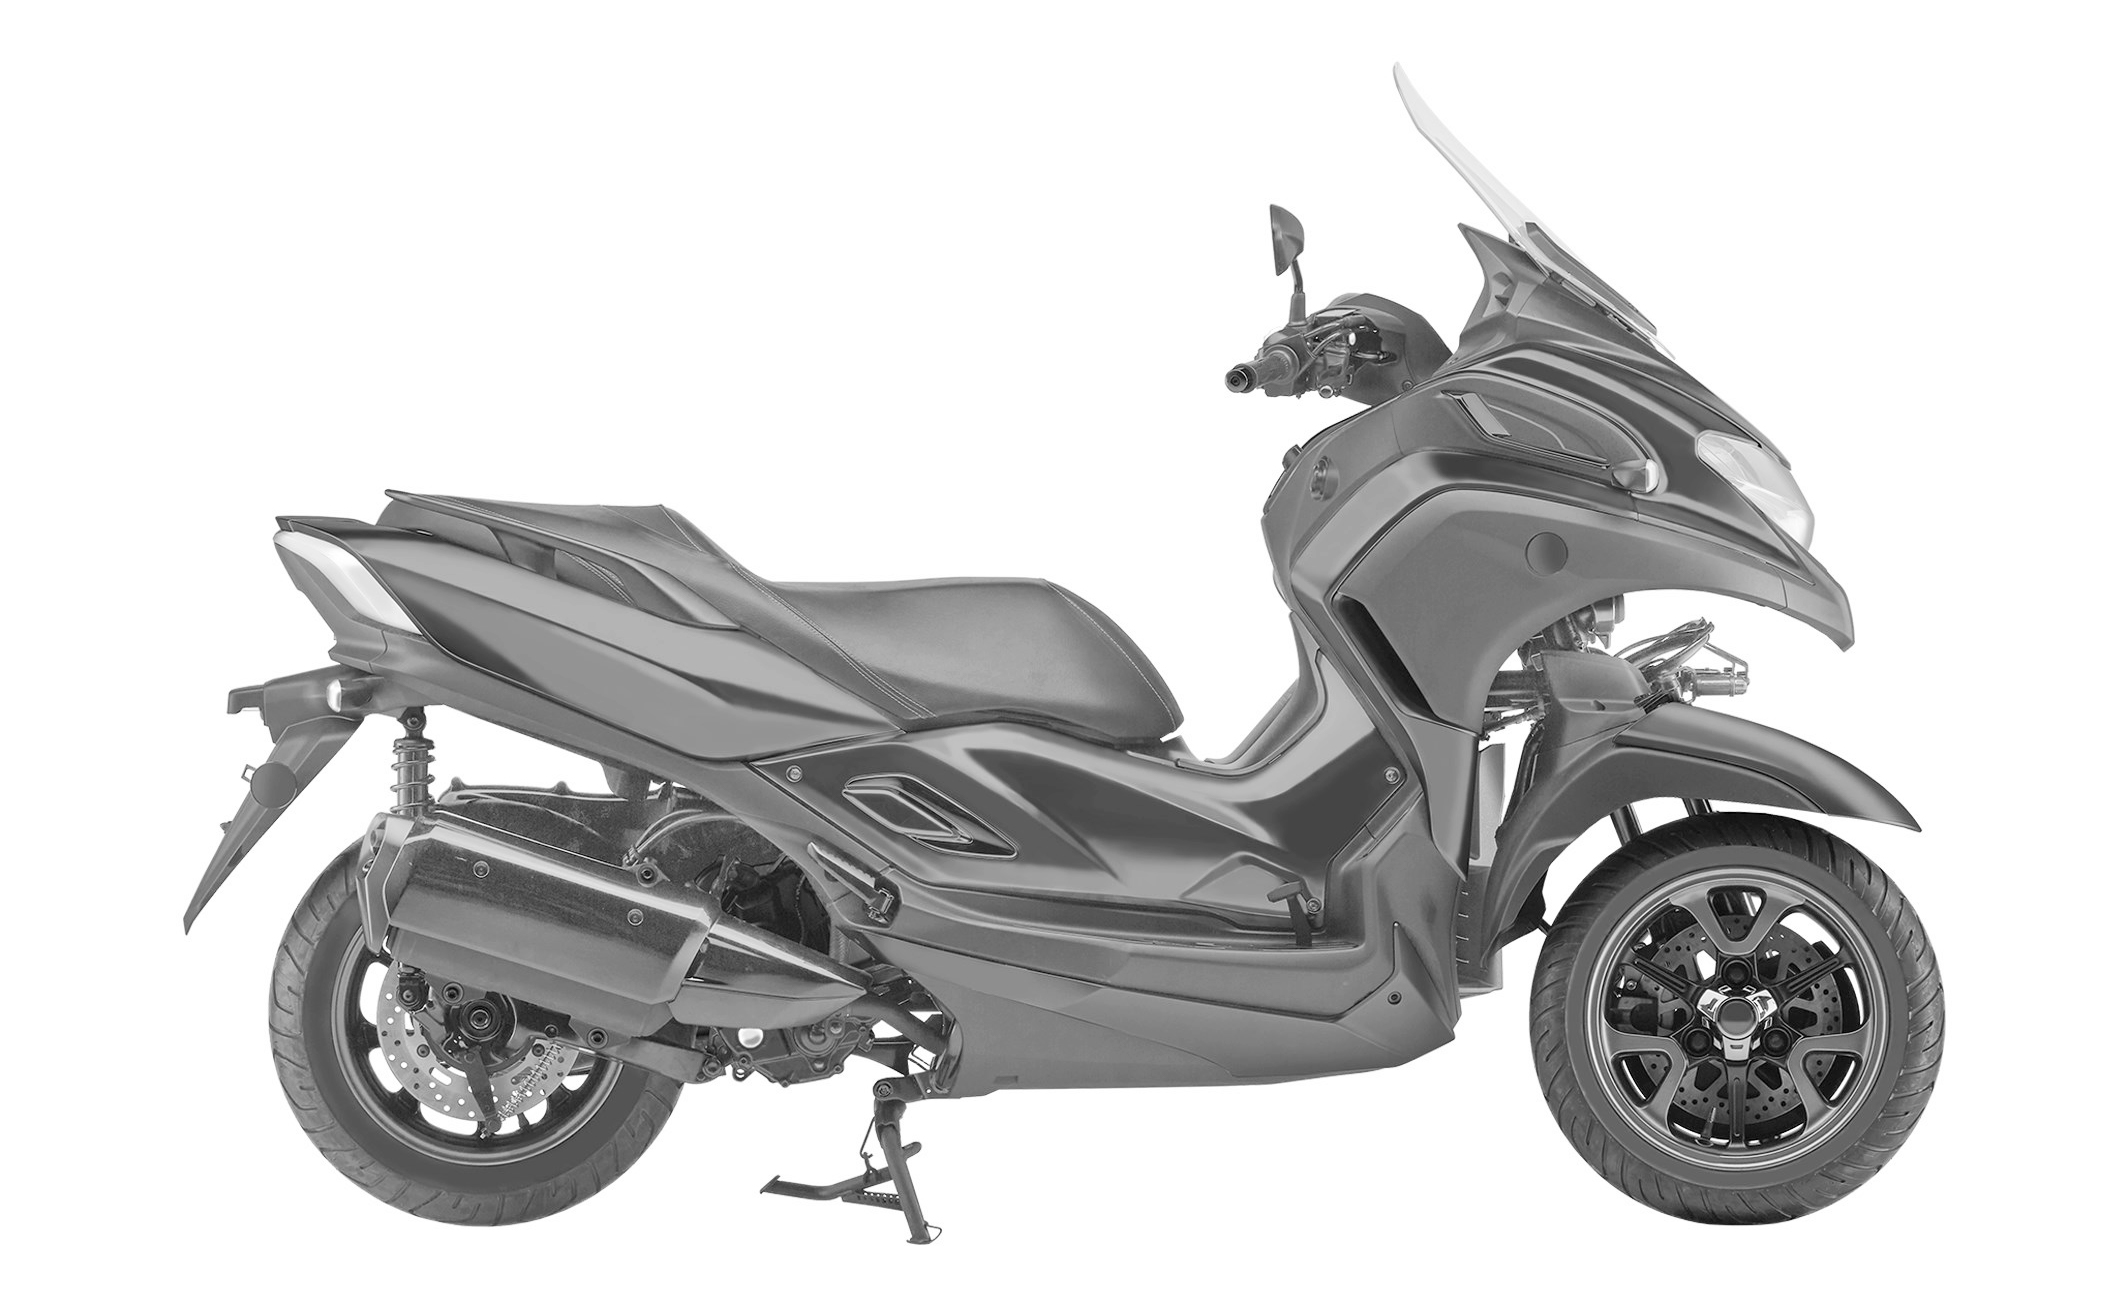 Design Filings Reveal Production Version of Yamaha 3CT Scooter